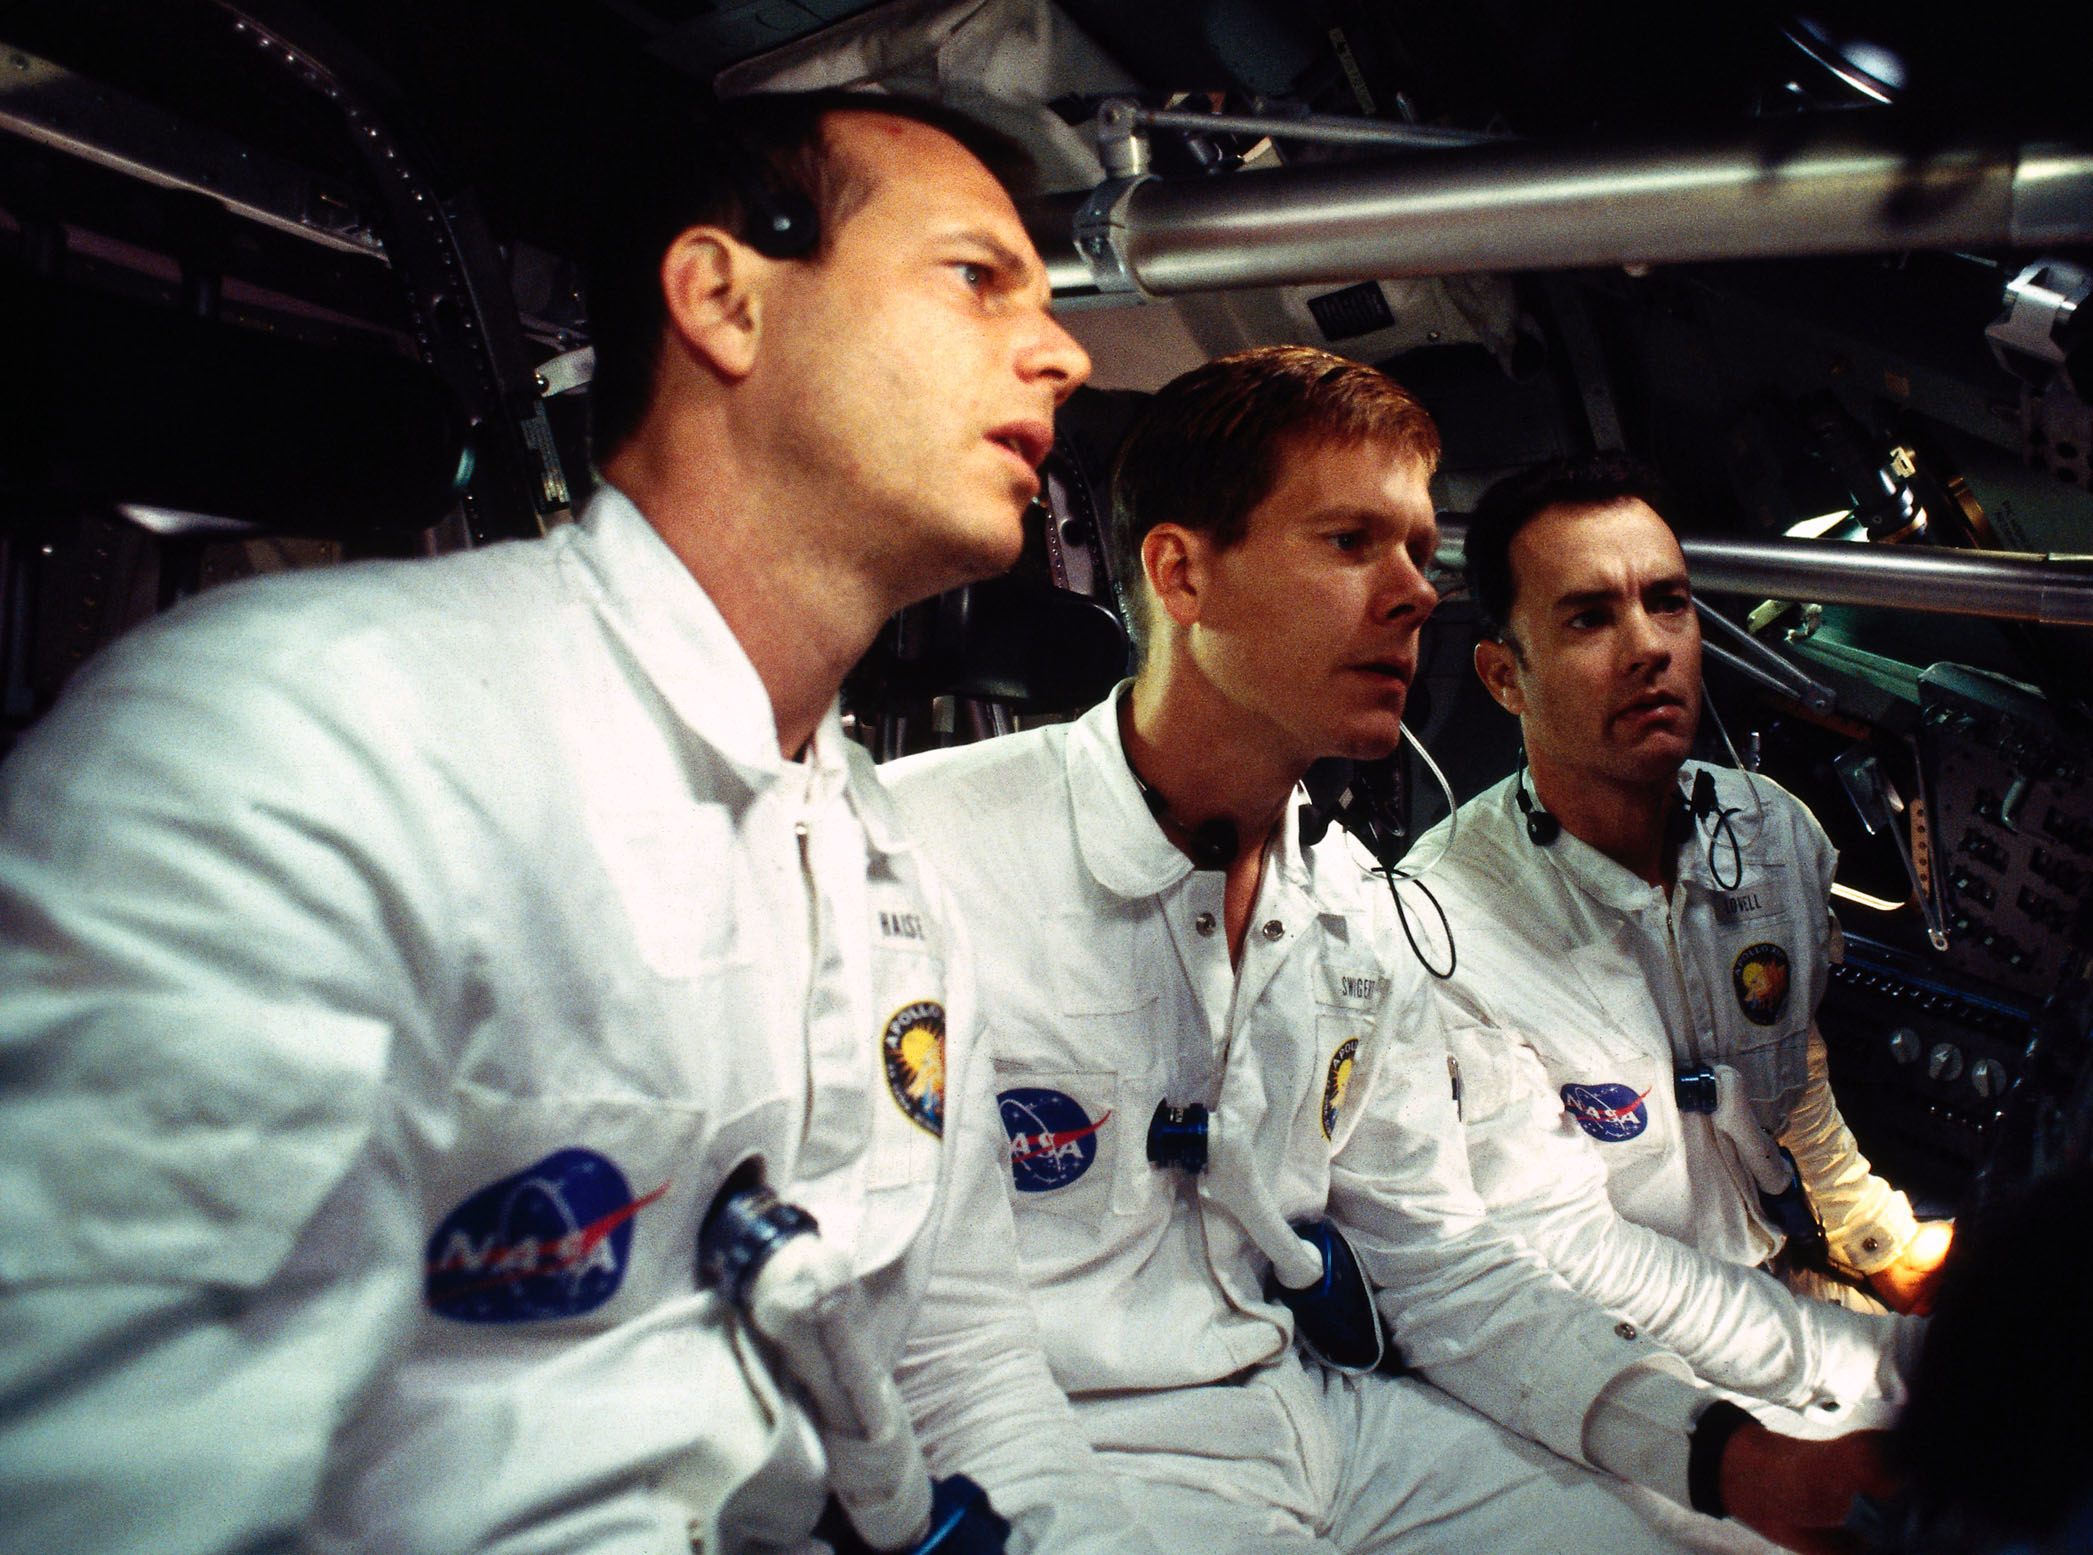 Bill Paxton, Kevin Bacon, and Tom Hanks in a space ship